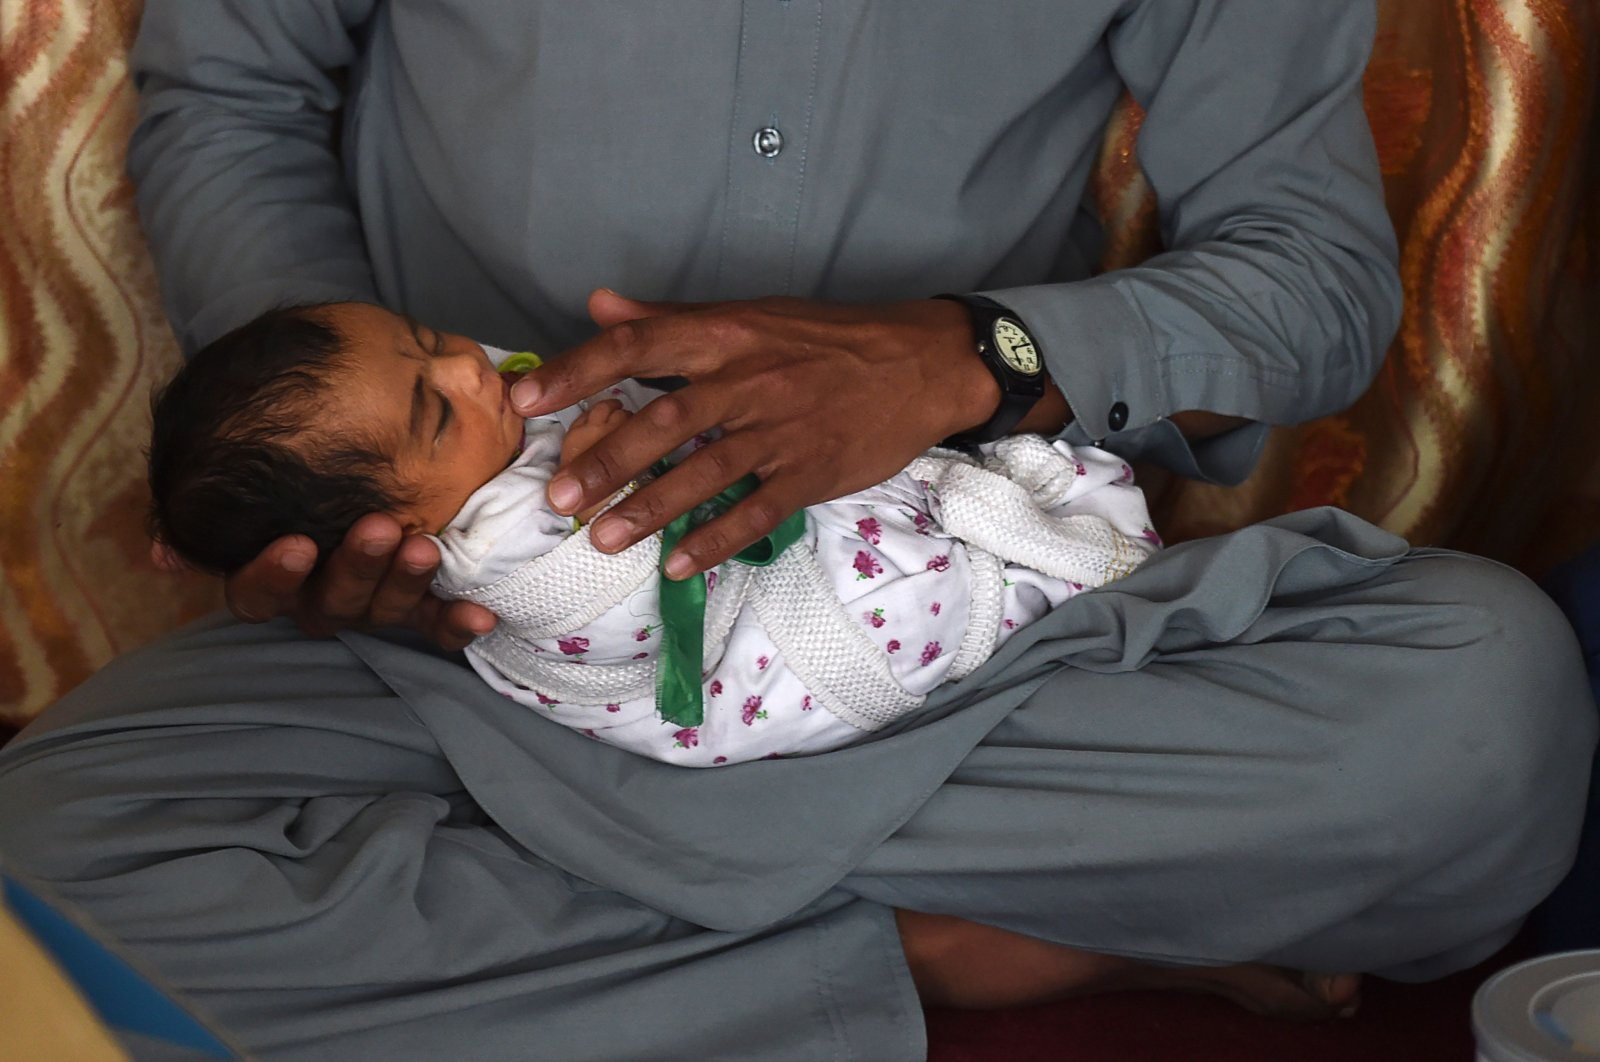 Hasan Ali, 32, and his newborn daughter, Roya, survivors of an attack by militants on a maternity ward in Kabul, sit in their home after receiving relief aid from a charity on the outskirts of the capital city, Kabul, May 22, 2020. (AFP Photo)